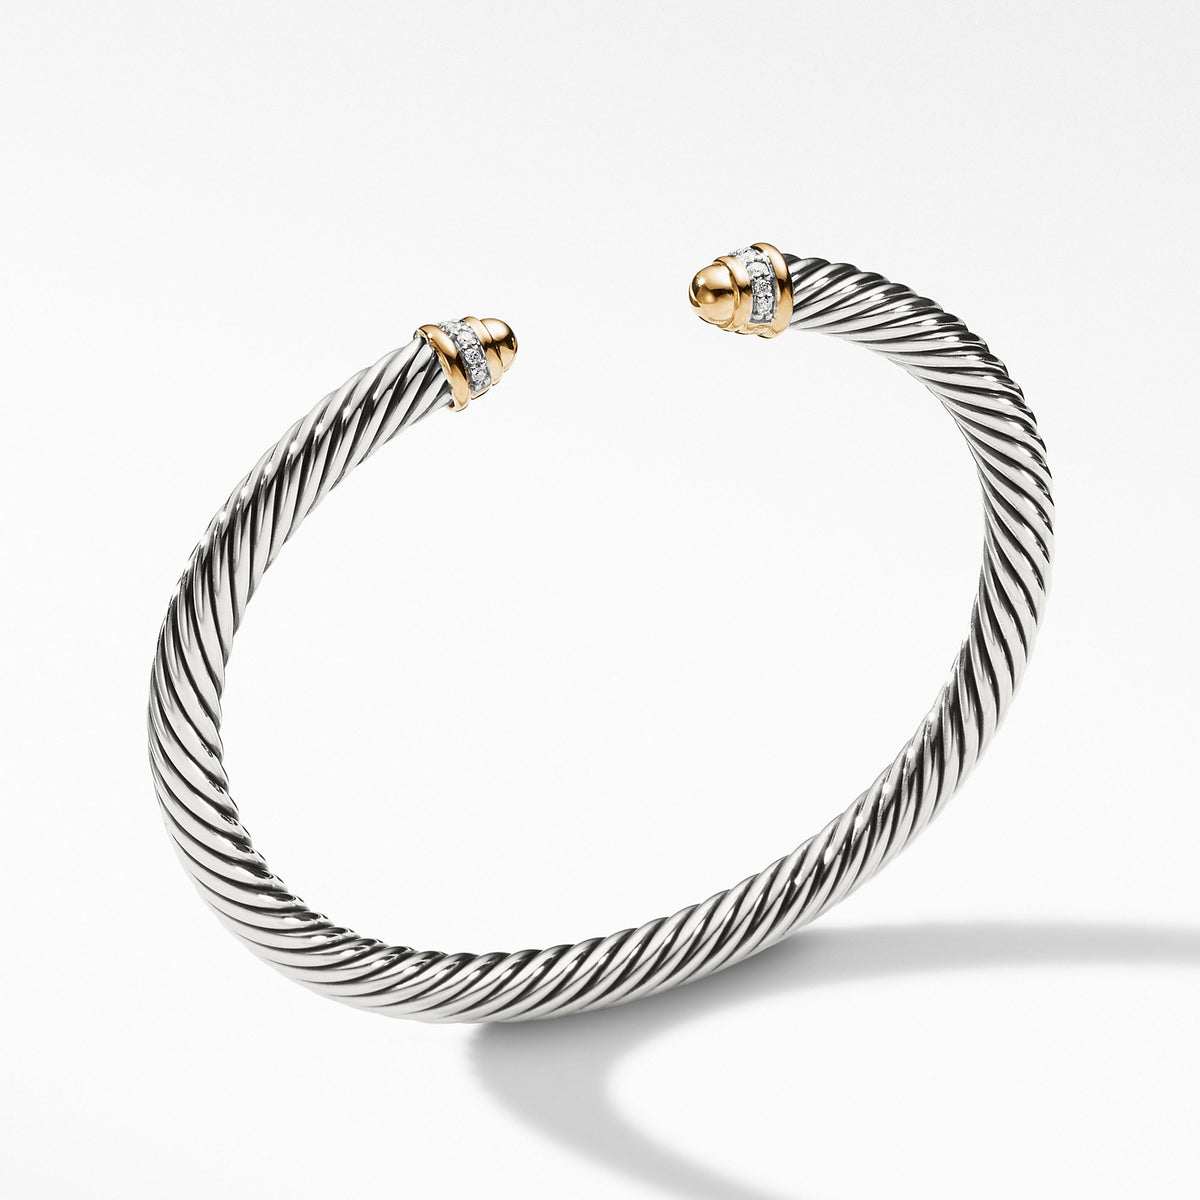 Cable Classics Collection Bracelet with Diamonds and 18K Gold